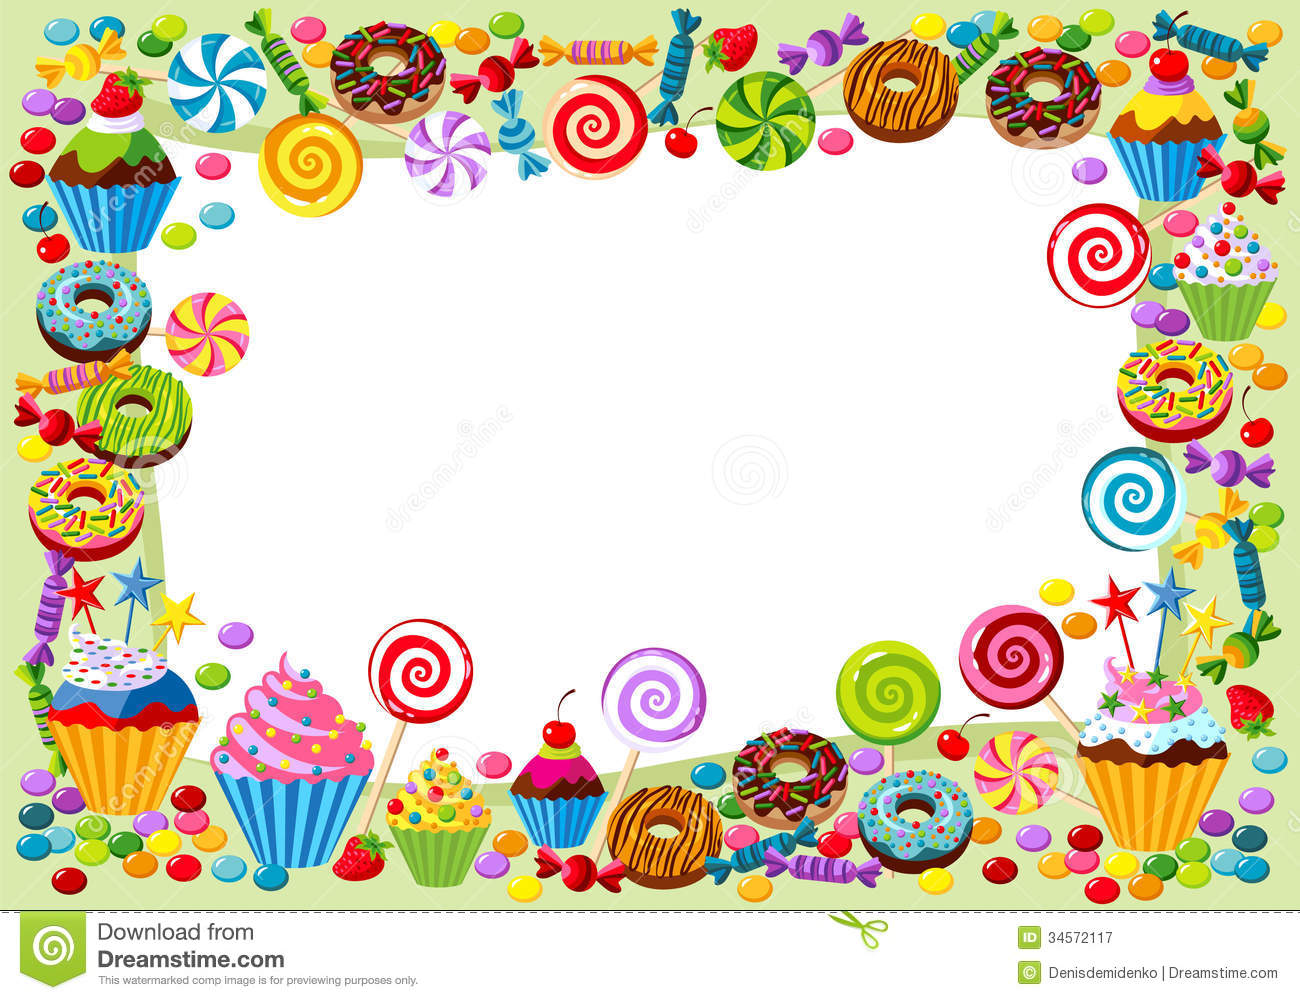 Cute Shopkins Wallpaper Hd Sweet Background Sweetest Day Stock Vector